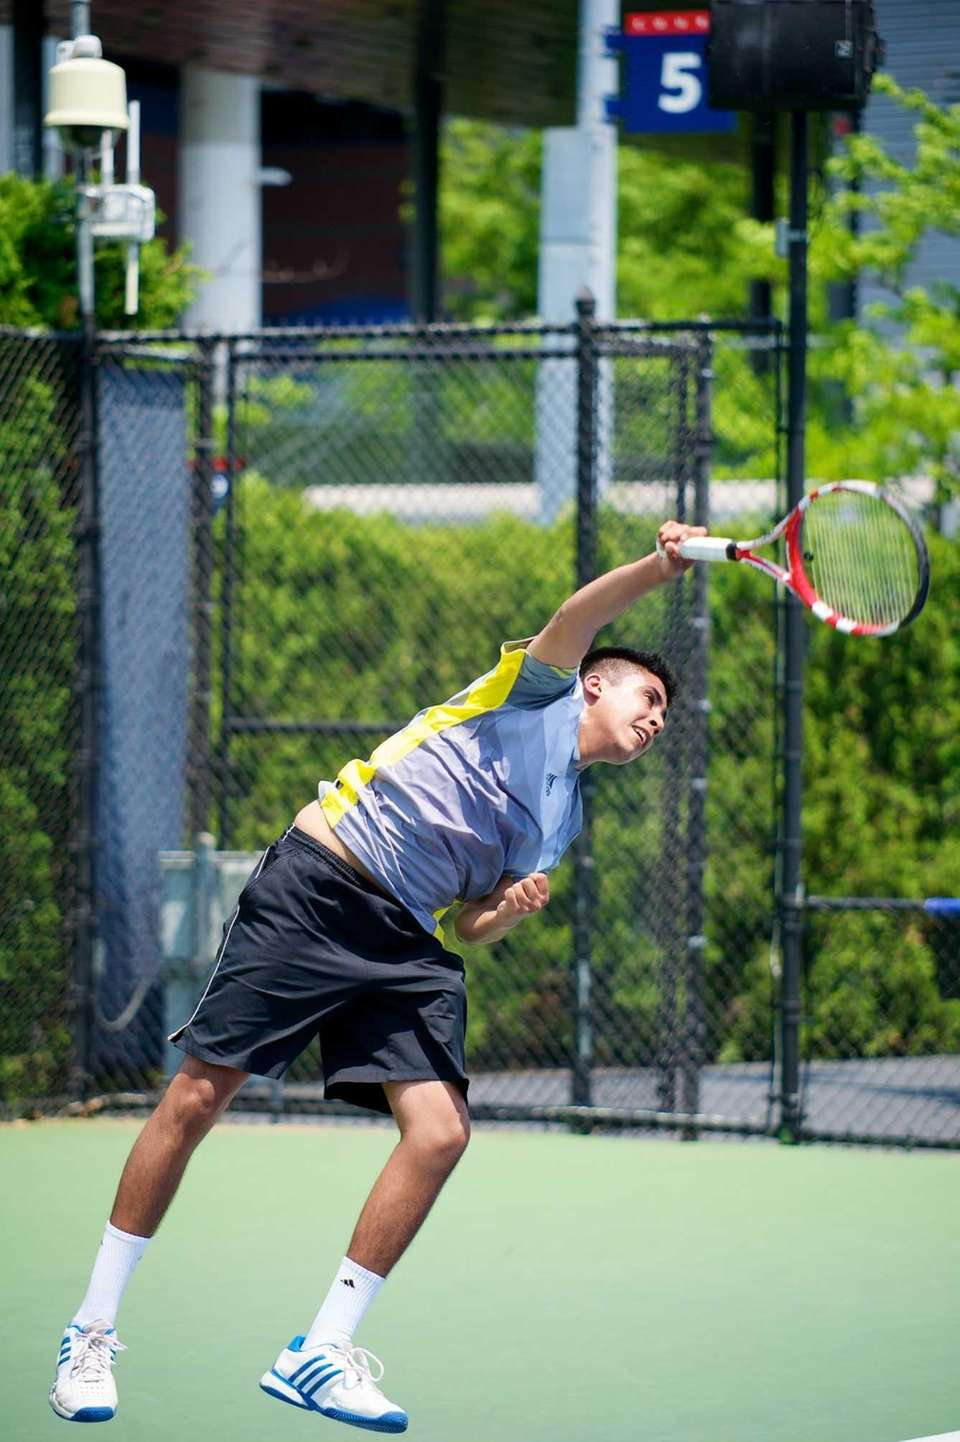 Zain Ali of Half Hollow Hills East serves